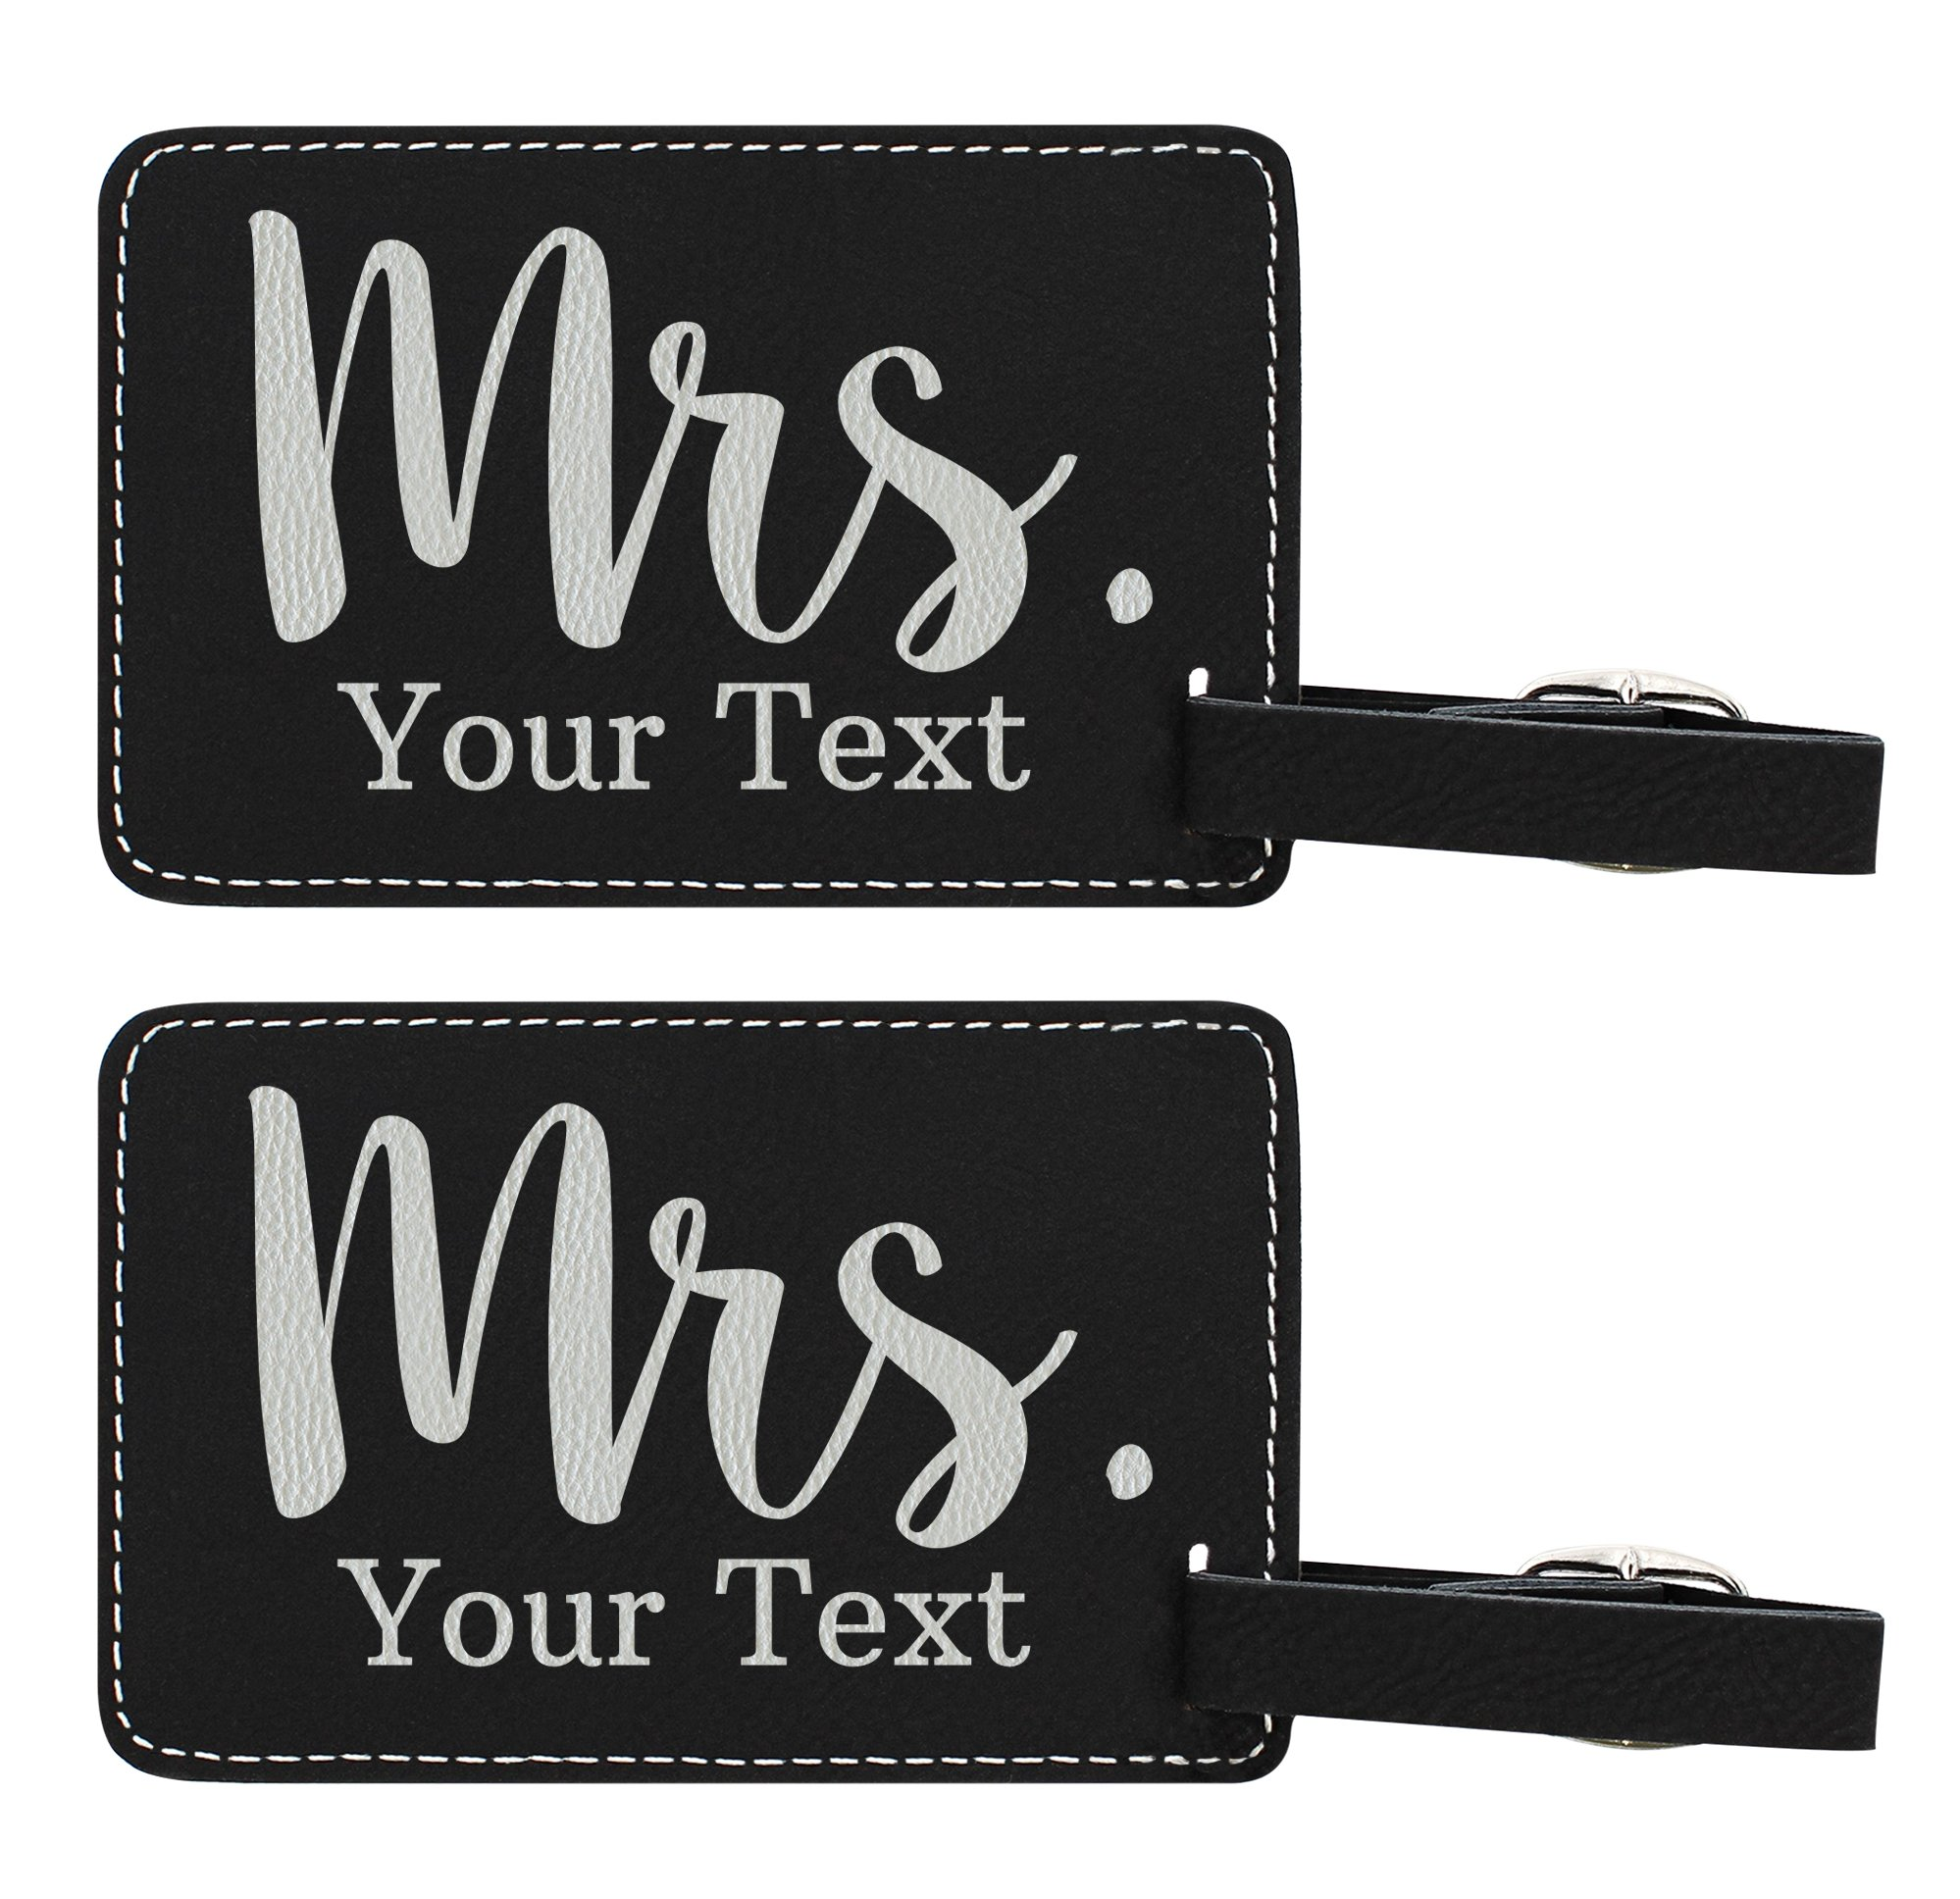 Personalized Wedding Anniversary Gifts Custom Last Name Mrs Name Personalized Wedding Gifts Personalized 2-pack Laser Engraved Leather Luggage Tags Black